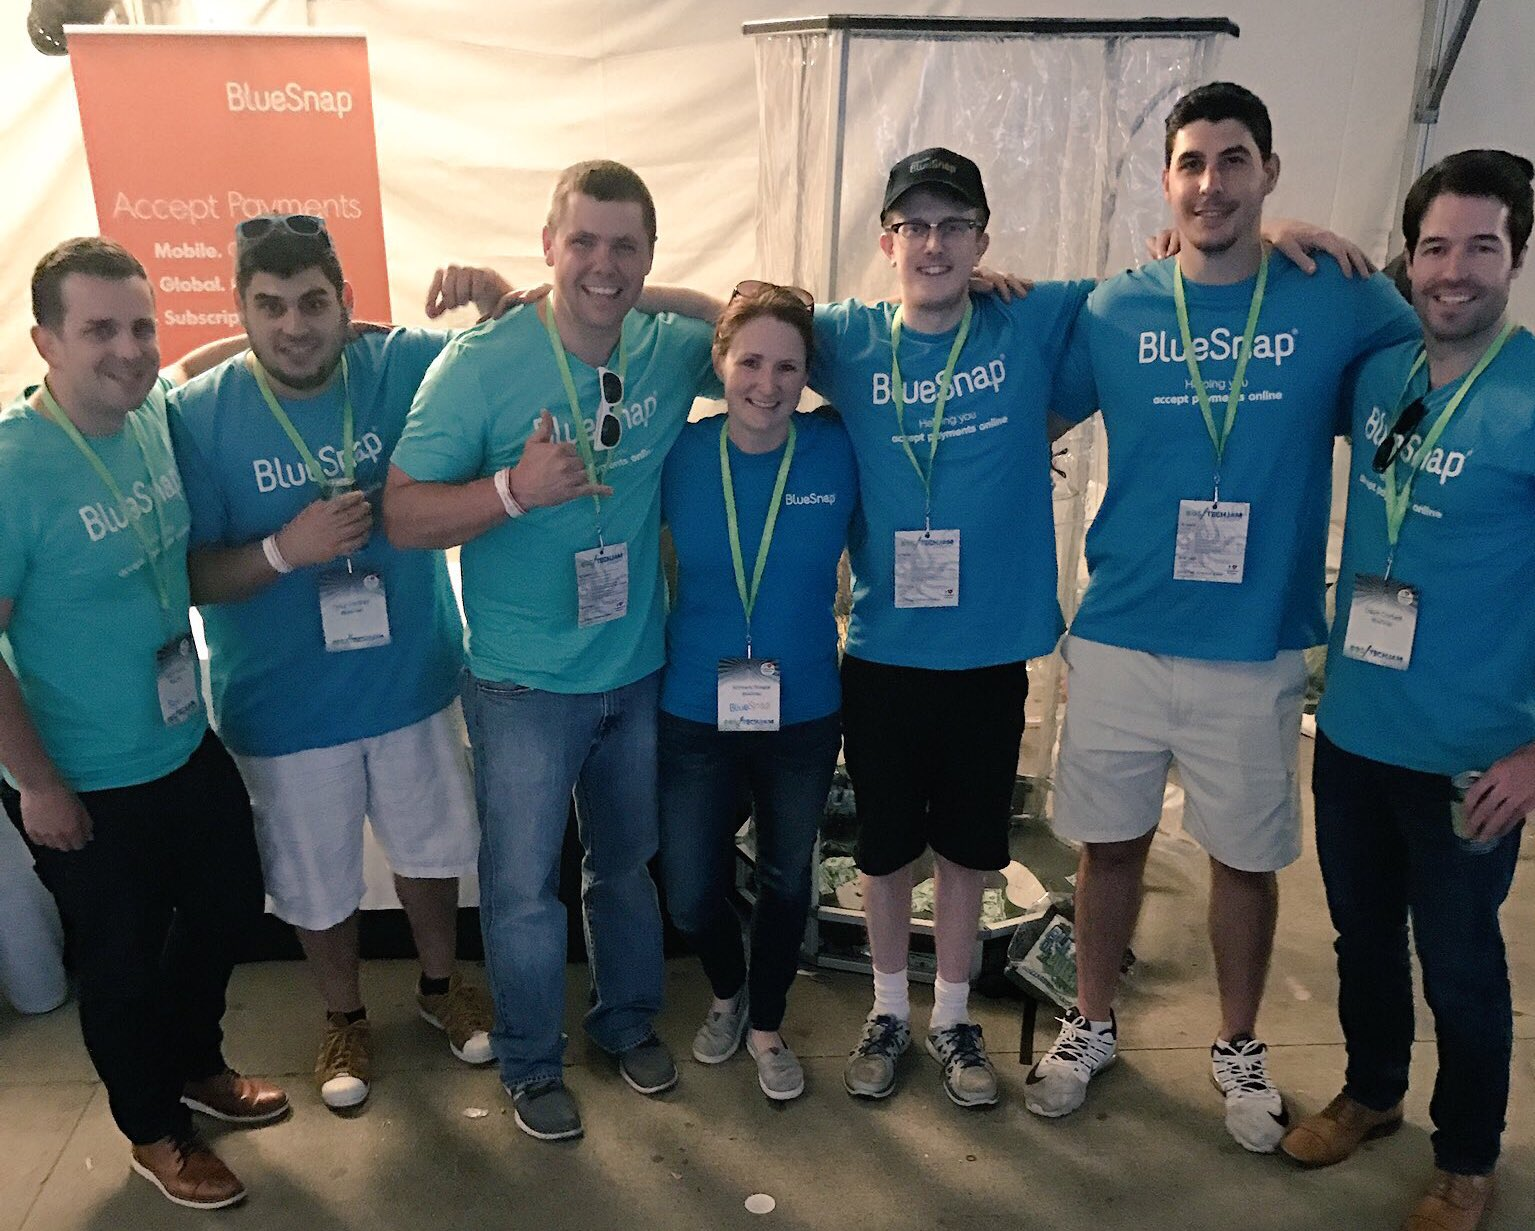 The snap team at #BTJ2017! We had a blast and thanks for coming by to talk payments and #makemomoney https://t.co/7gNLWg1U6M